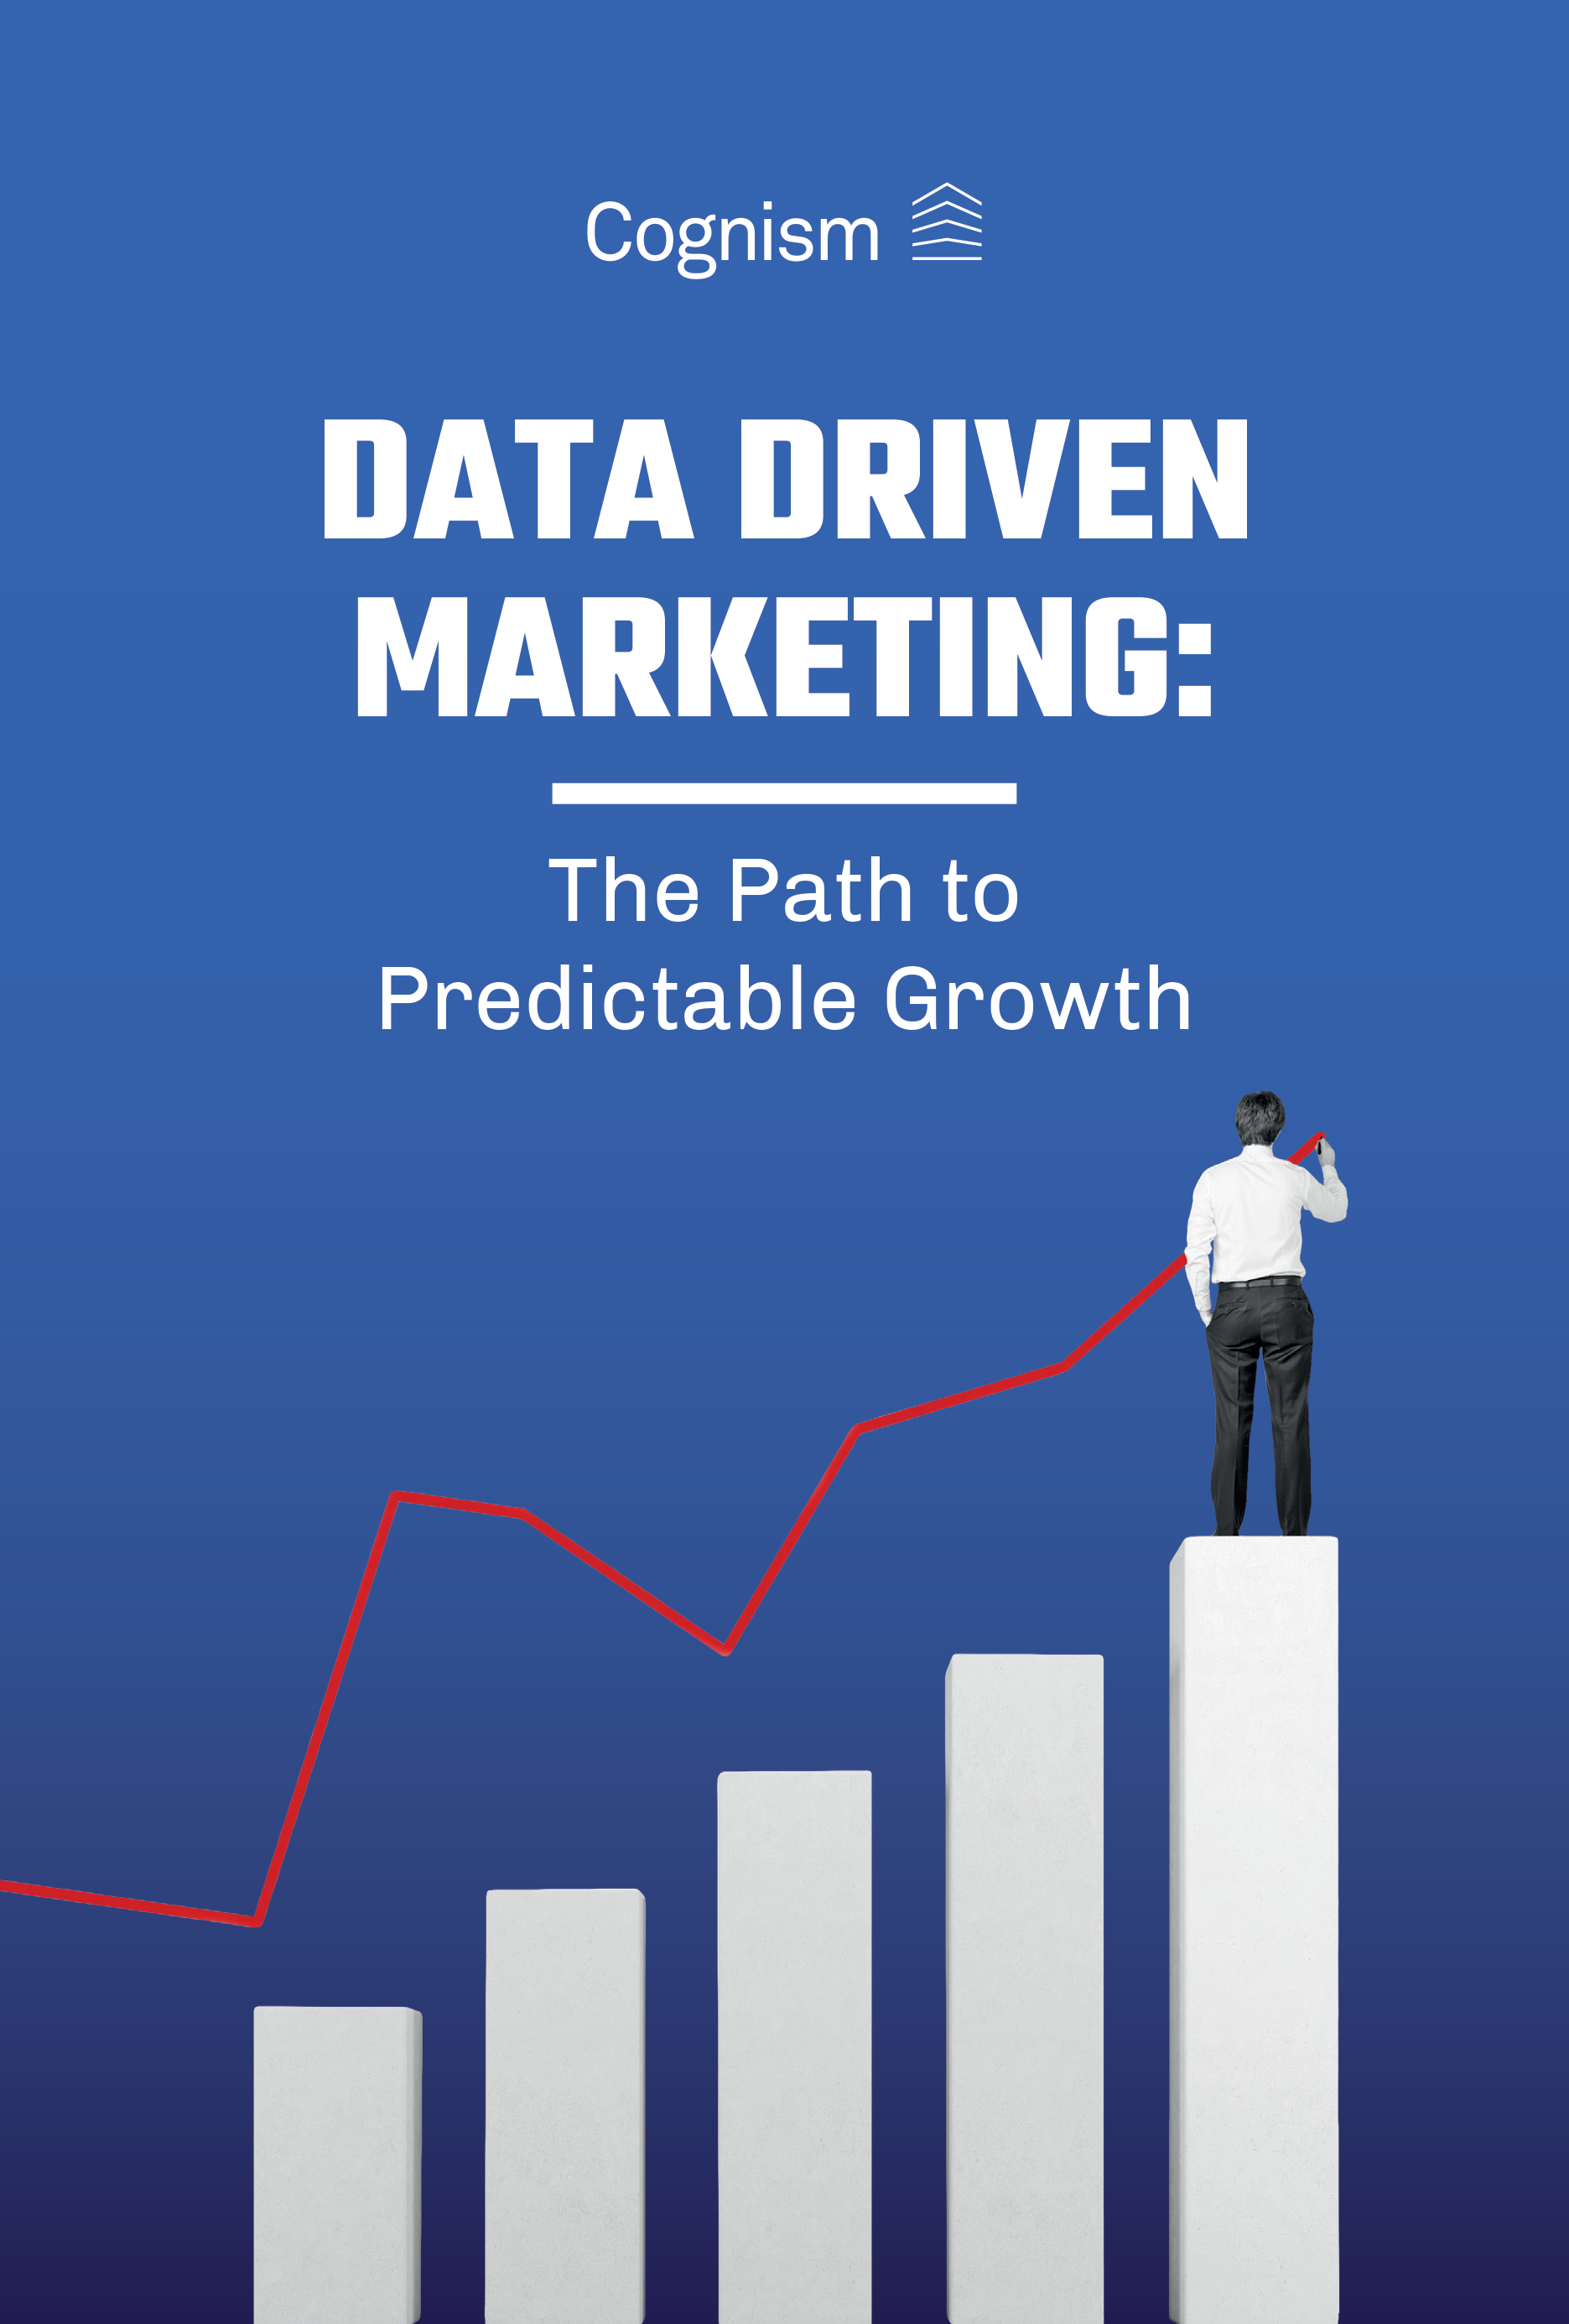 Data Driven Marketing - The Path to Predictable Growth hi res-1